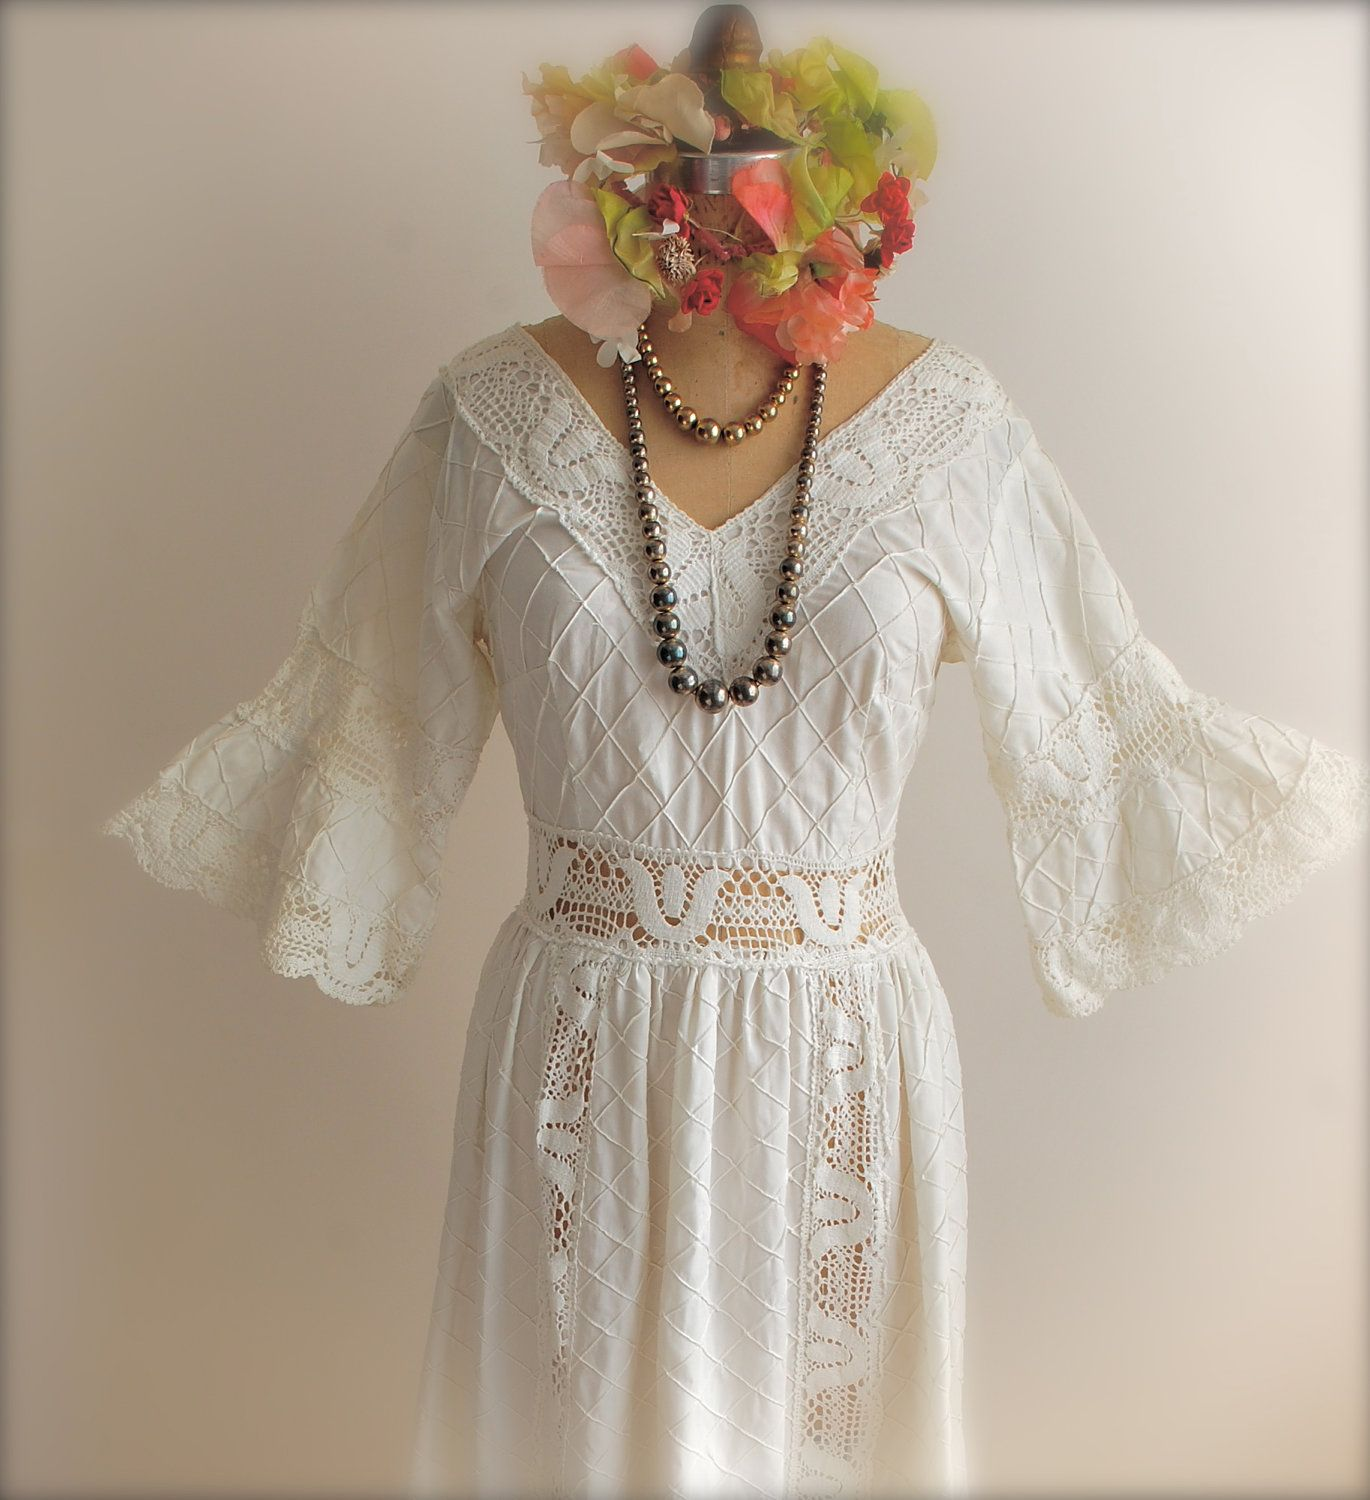 mexican wedding dress Mexican Wedding dress Prom Dress White Lace Bell Sleeves 50s Vintage